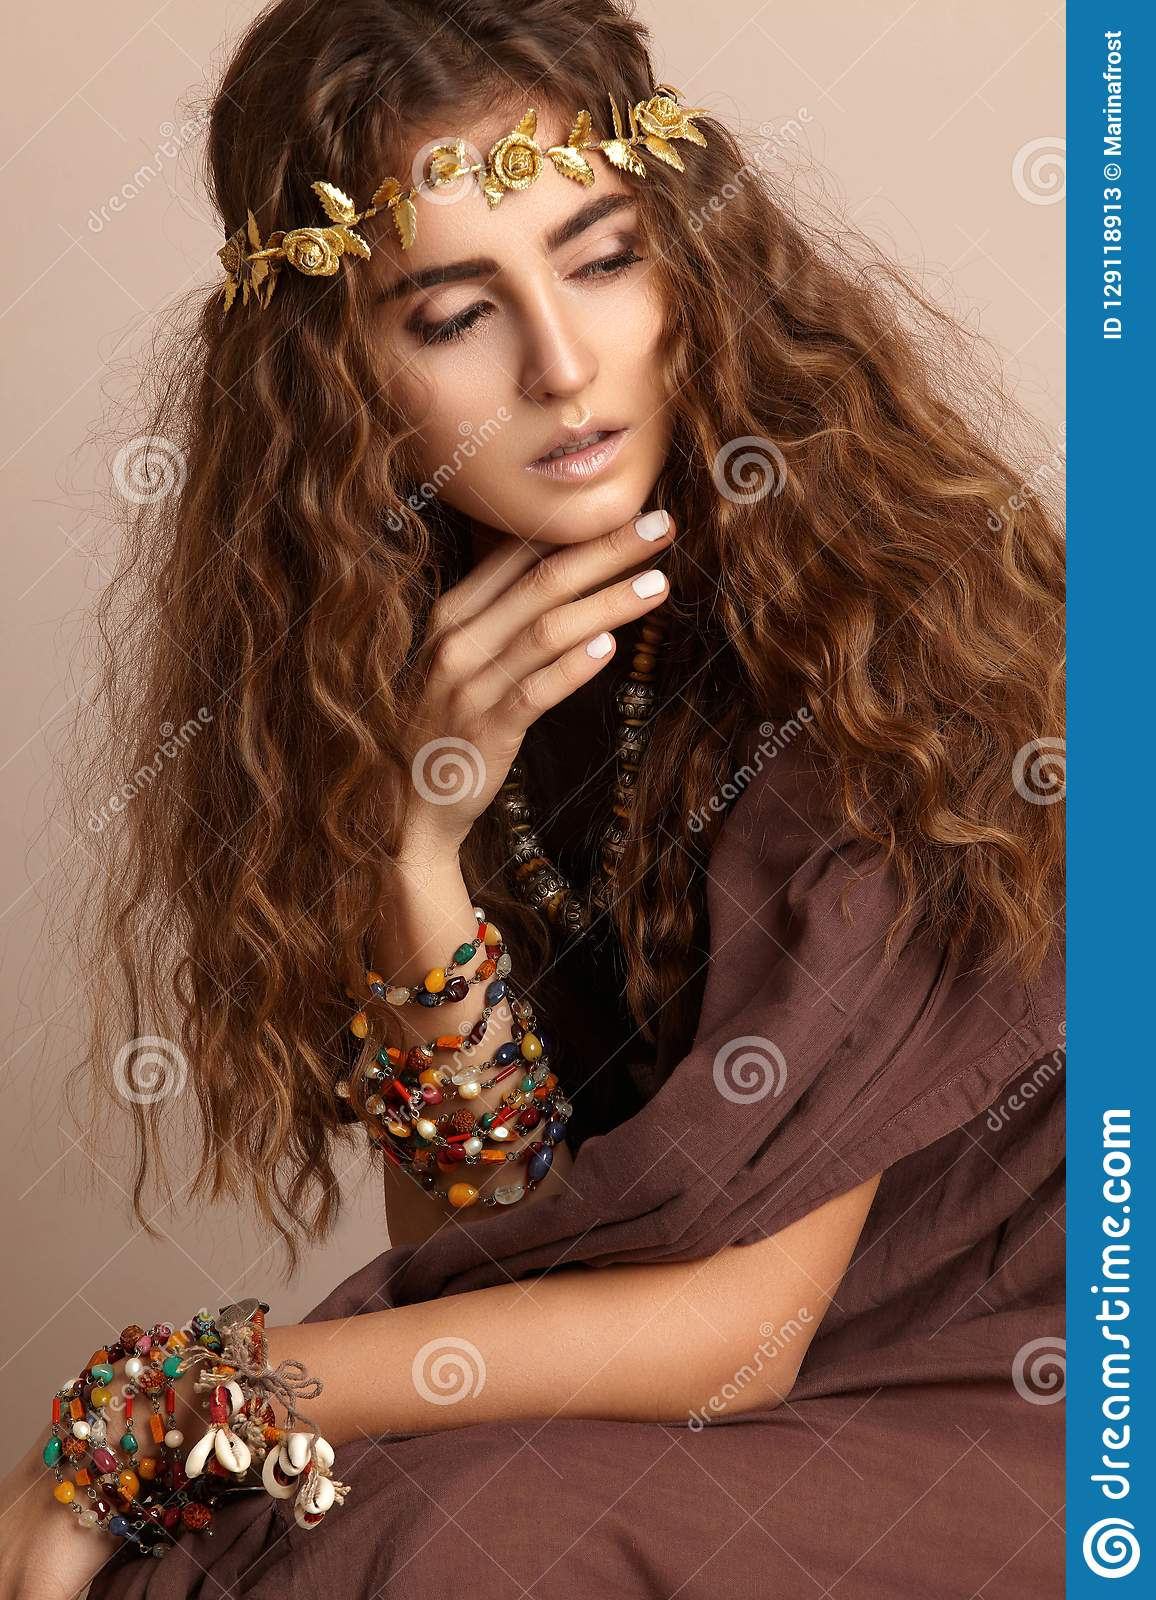 Beautiful Woman. Curly Long Hair. Fashion Model. Healthy Wavy Hairstyle. Accessories. Autumn Wreath, Gold Floral Crown